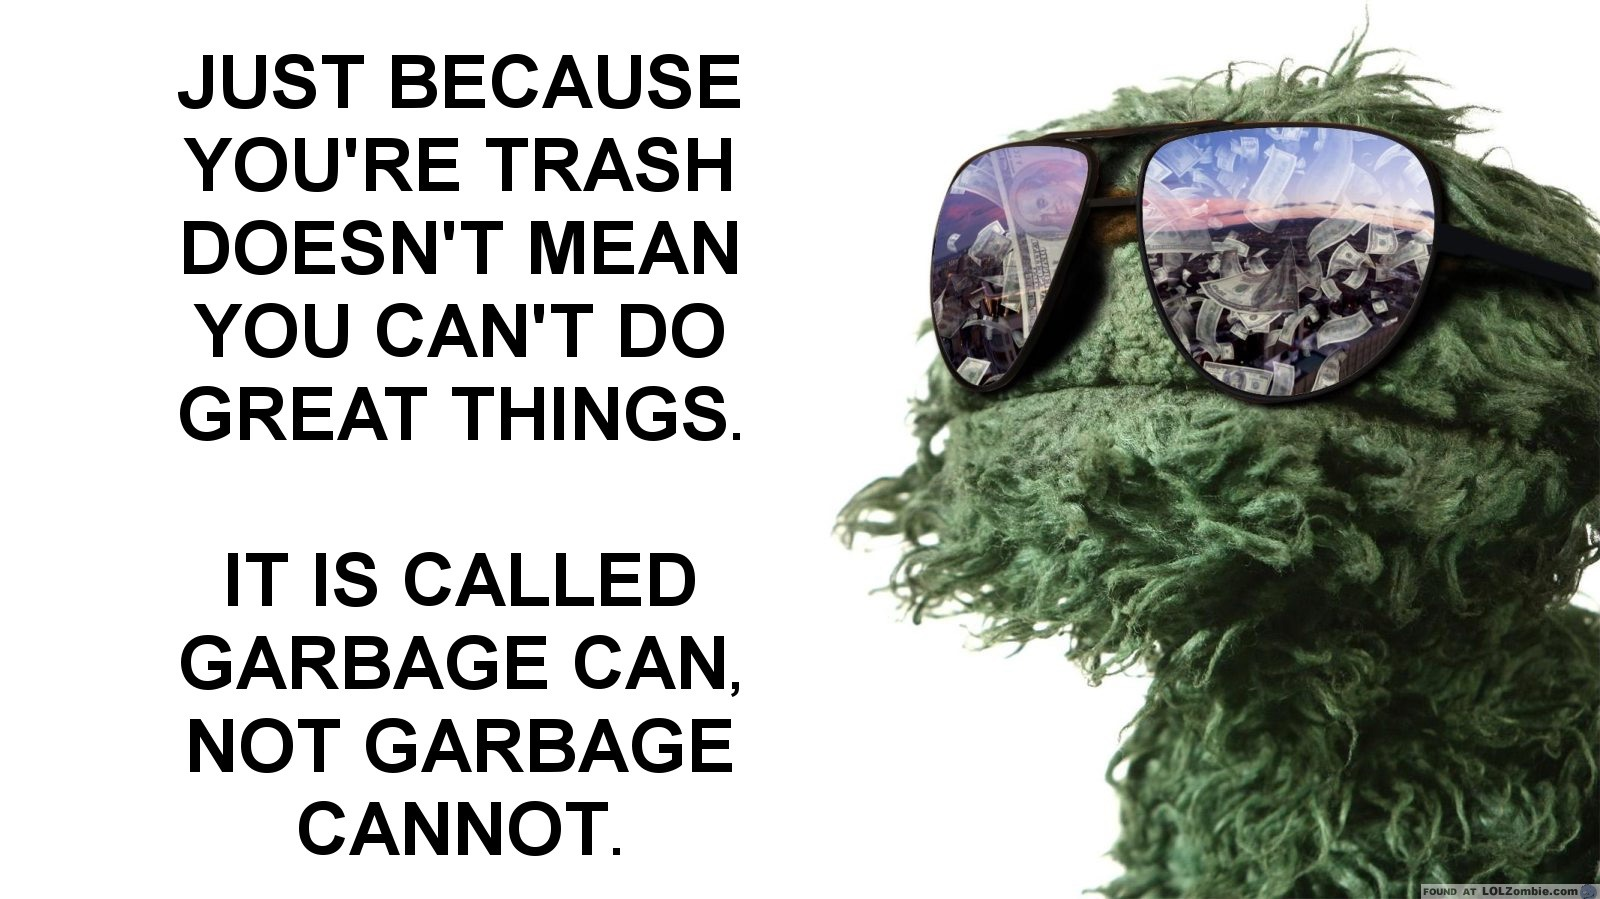 Just Because You're Trash Doesn't Mean You Can't Do Great